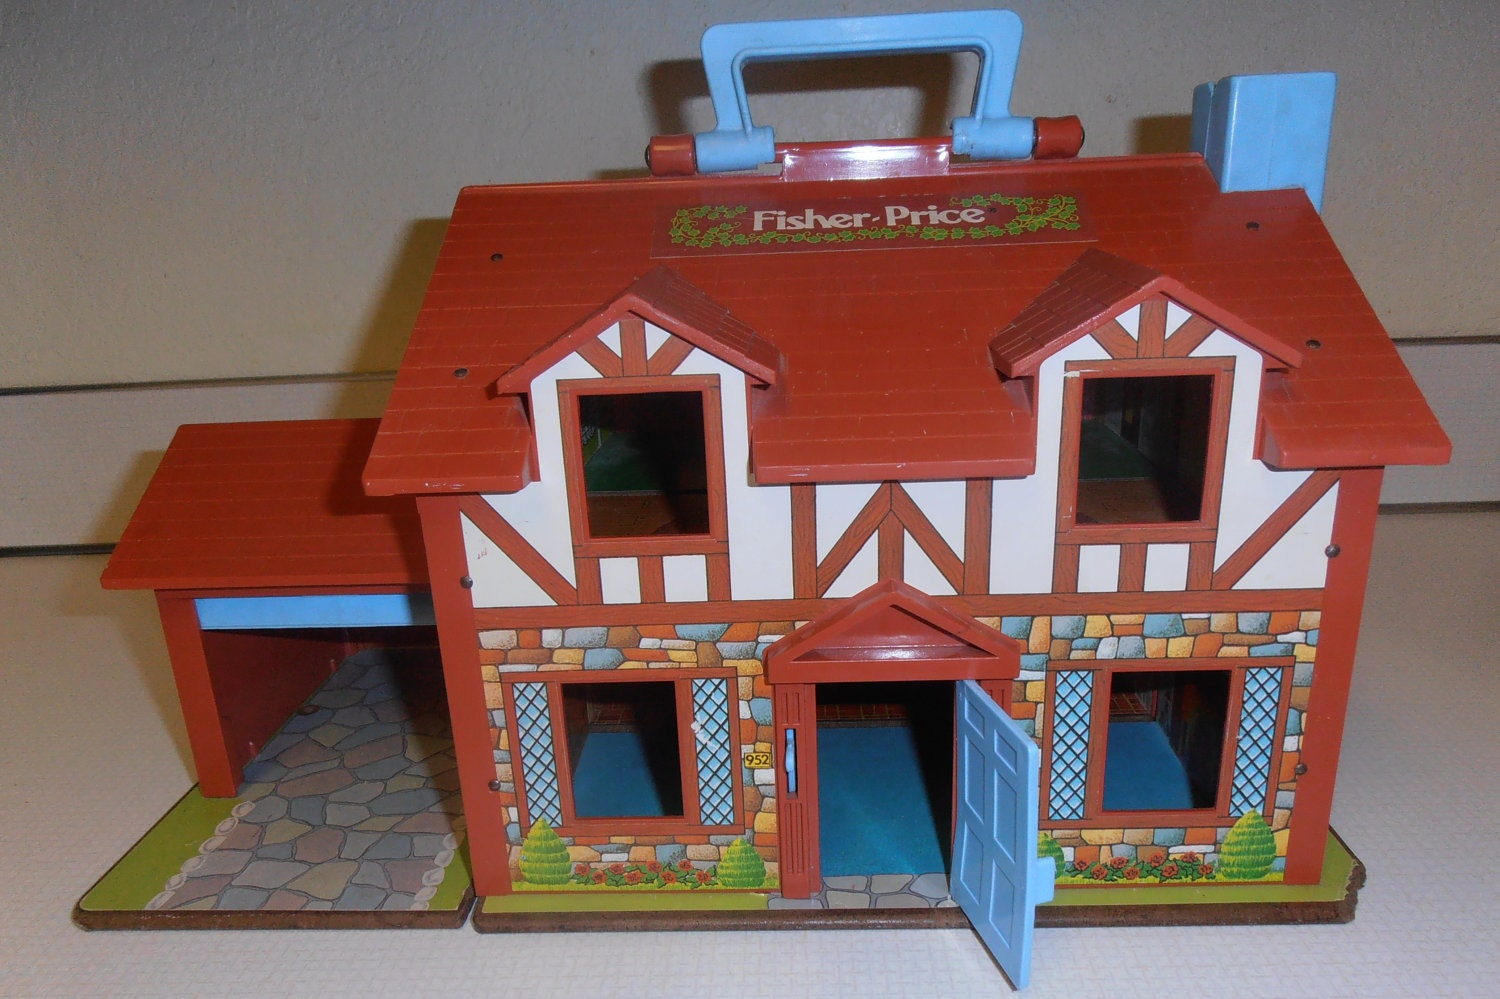 Little People Doll House Fisher Price Tudor House FP 952